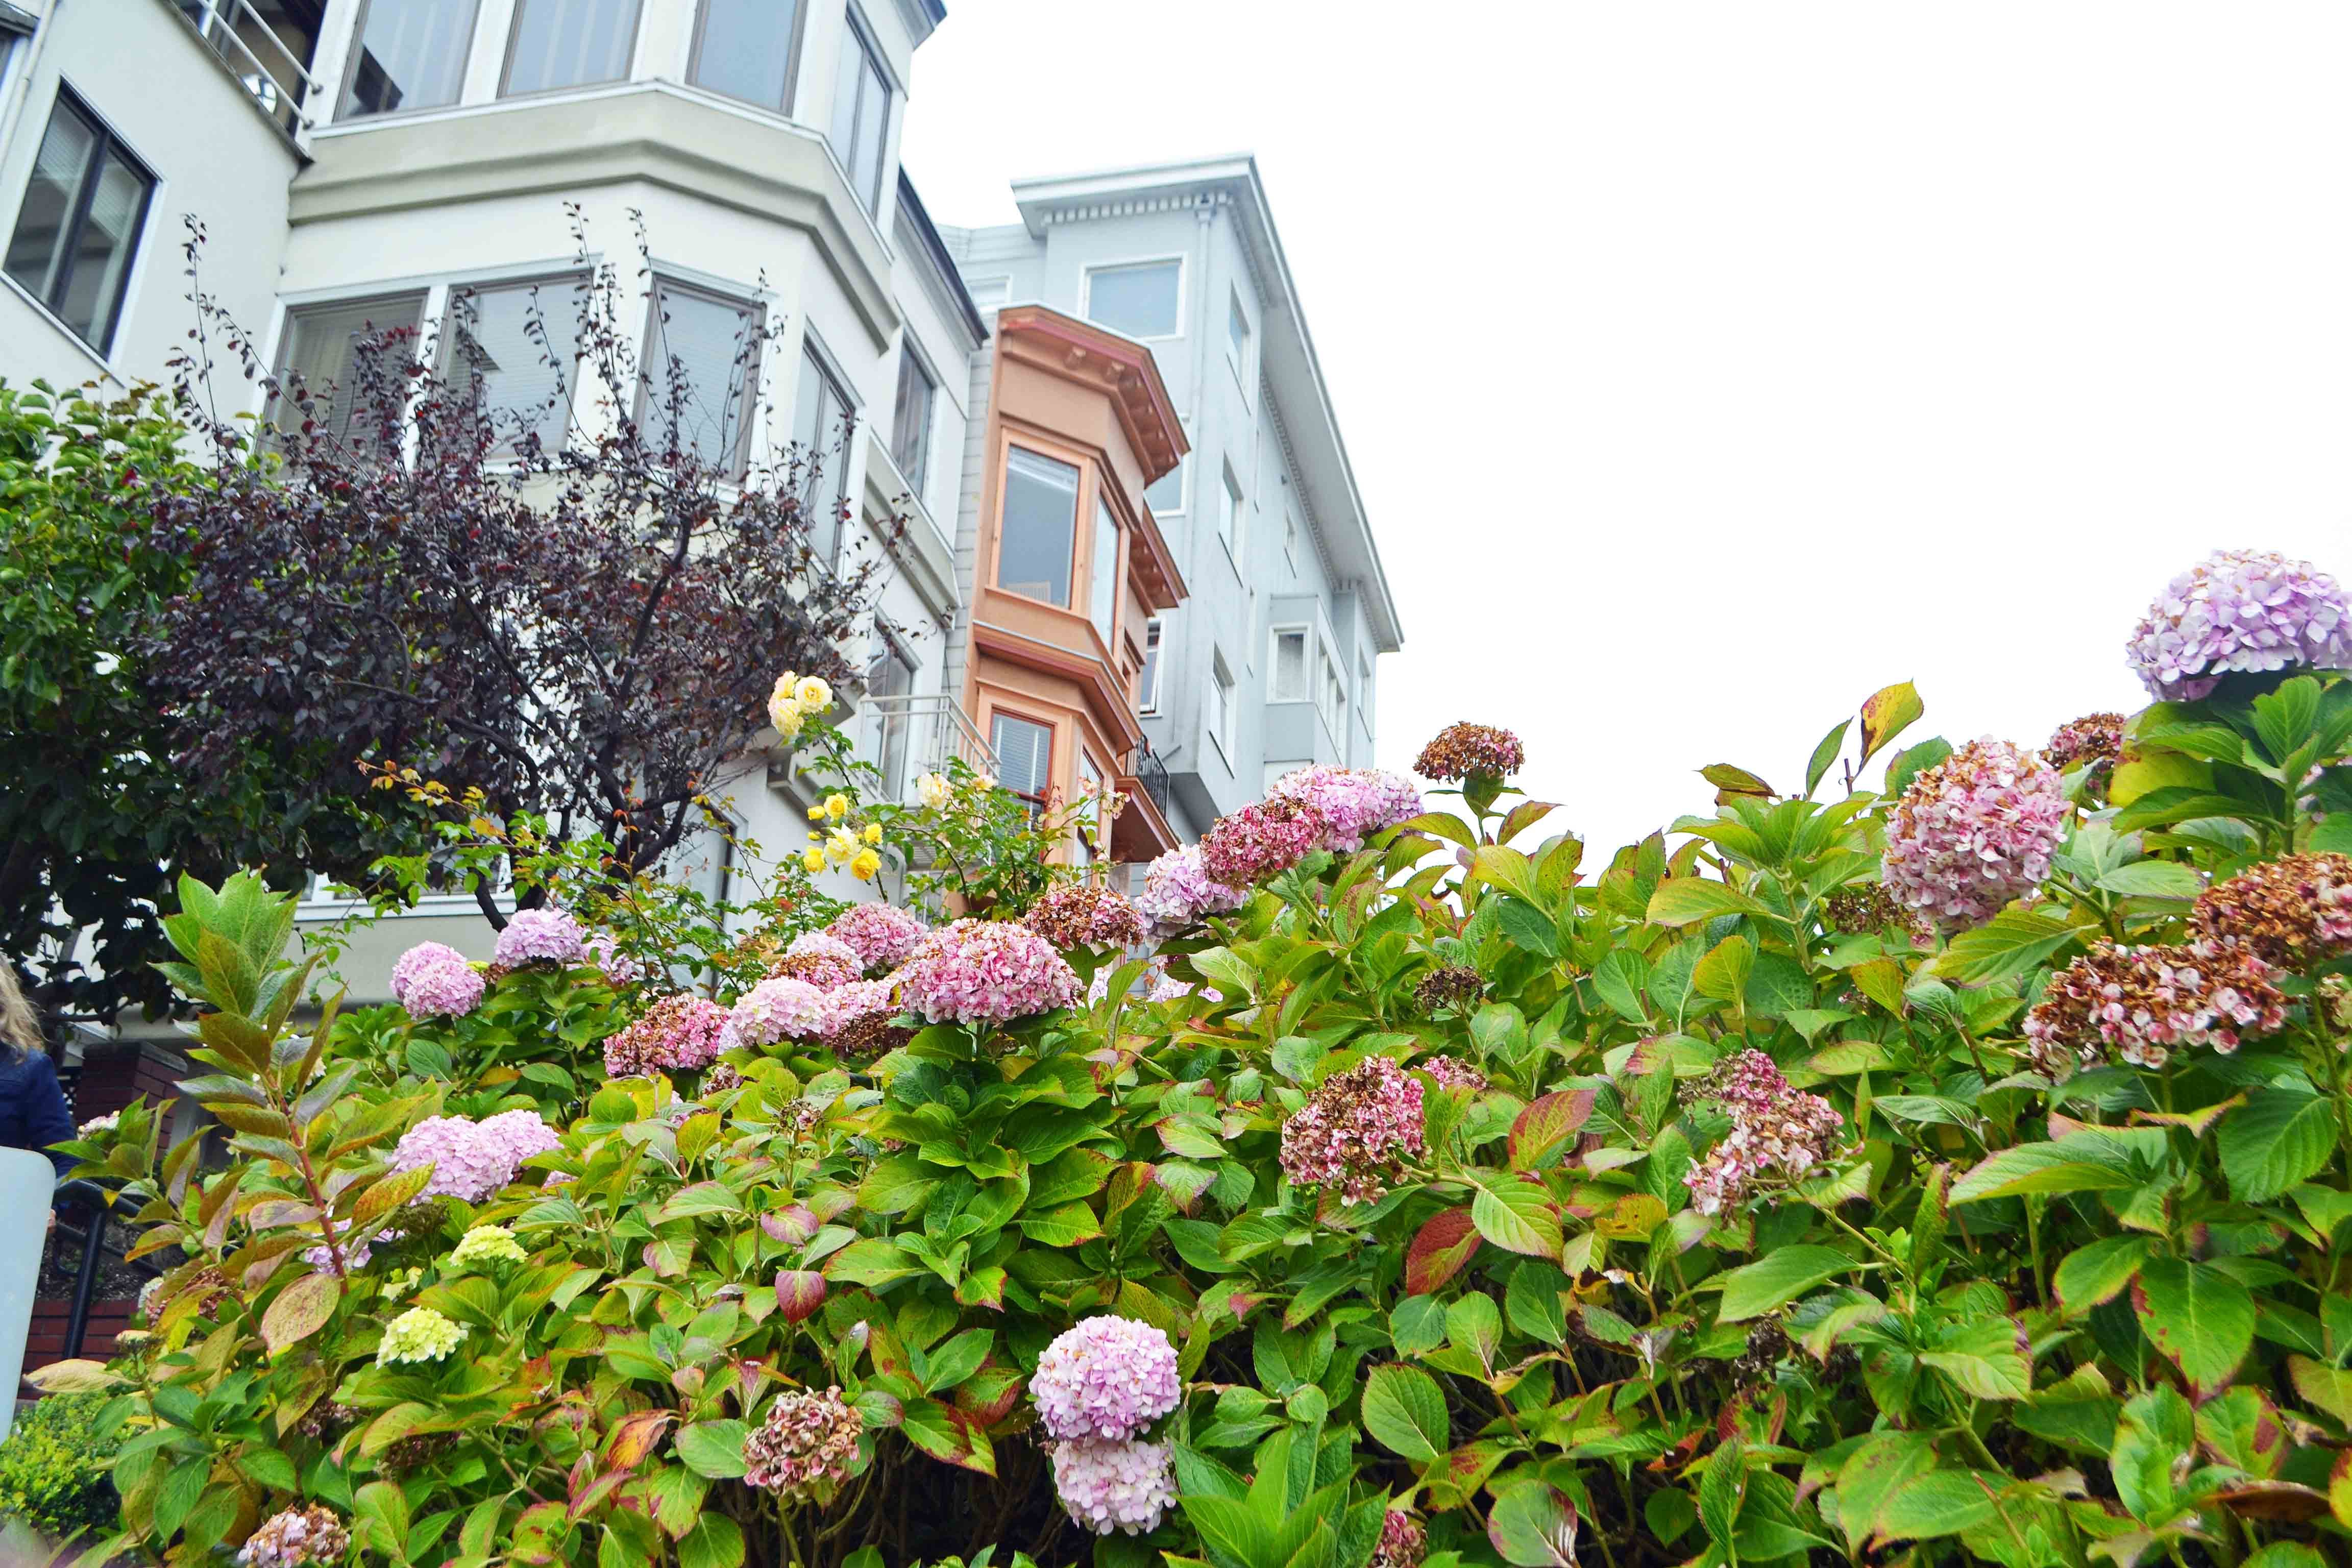 California Pacific Coast Highway 1 Road Trip Guide - San Francisco Lombard Street